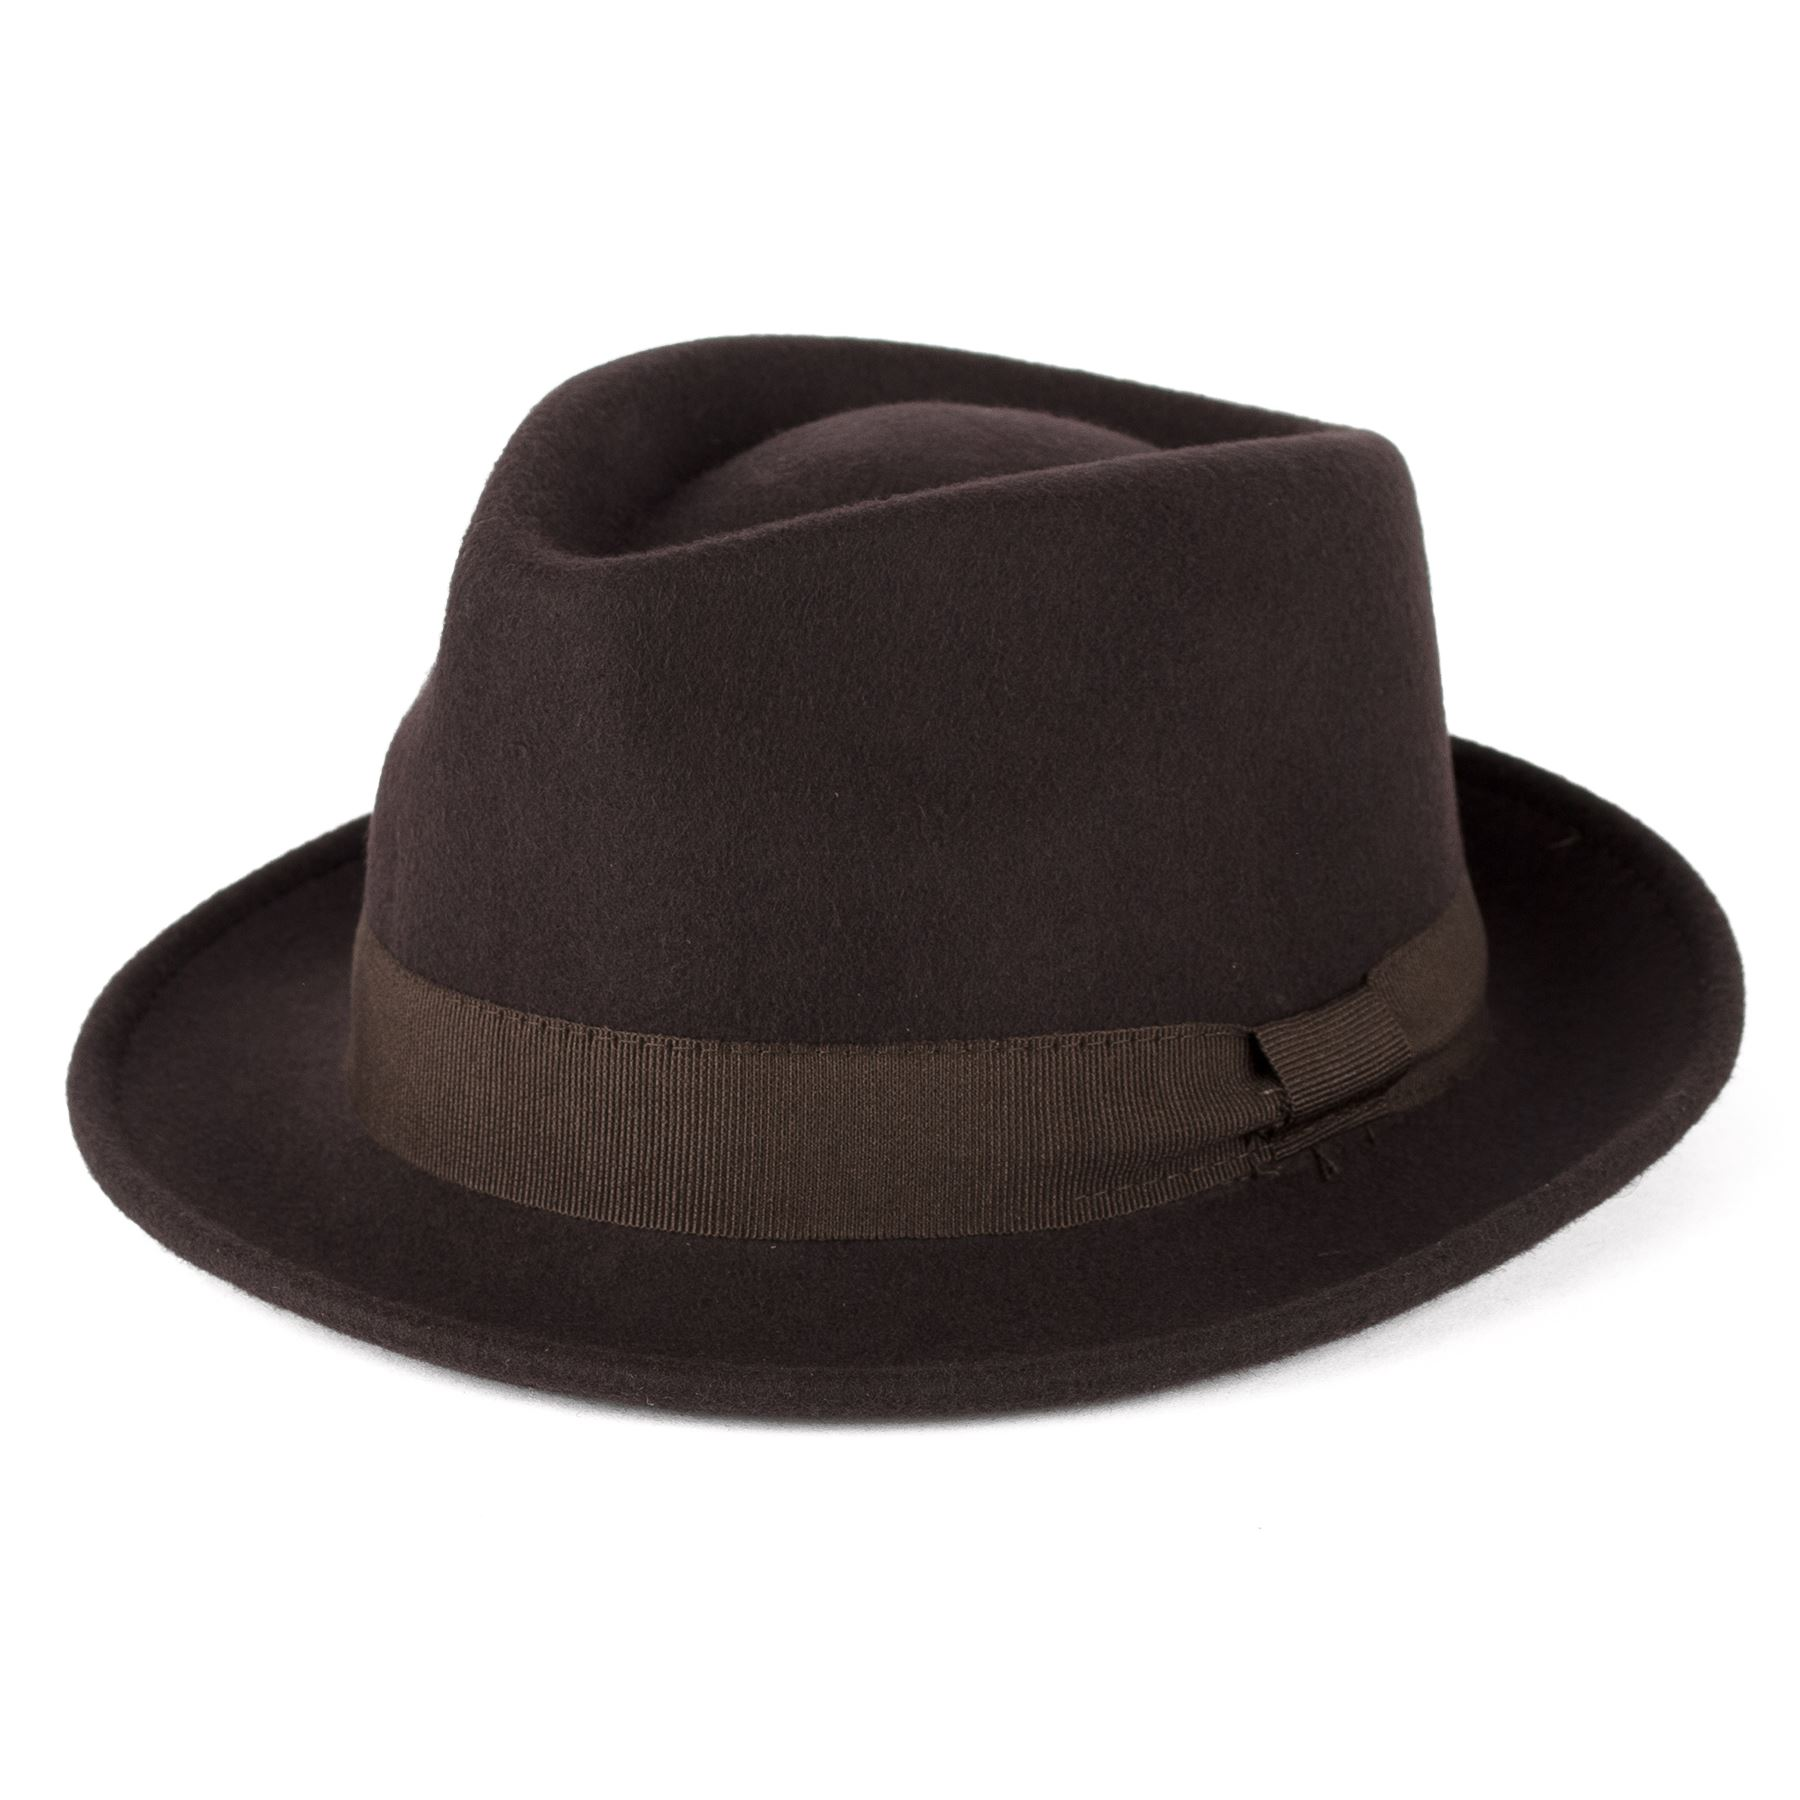 100-Wool-Trilby-Hat-with-Grosgrain-Band-Handmade-in-Italy